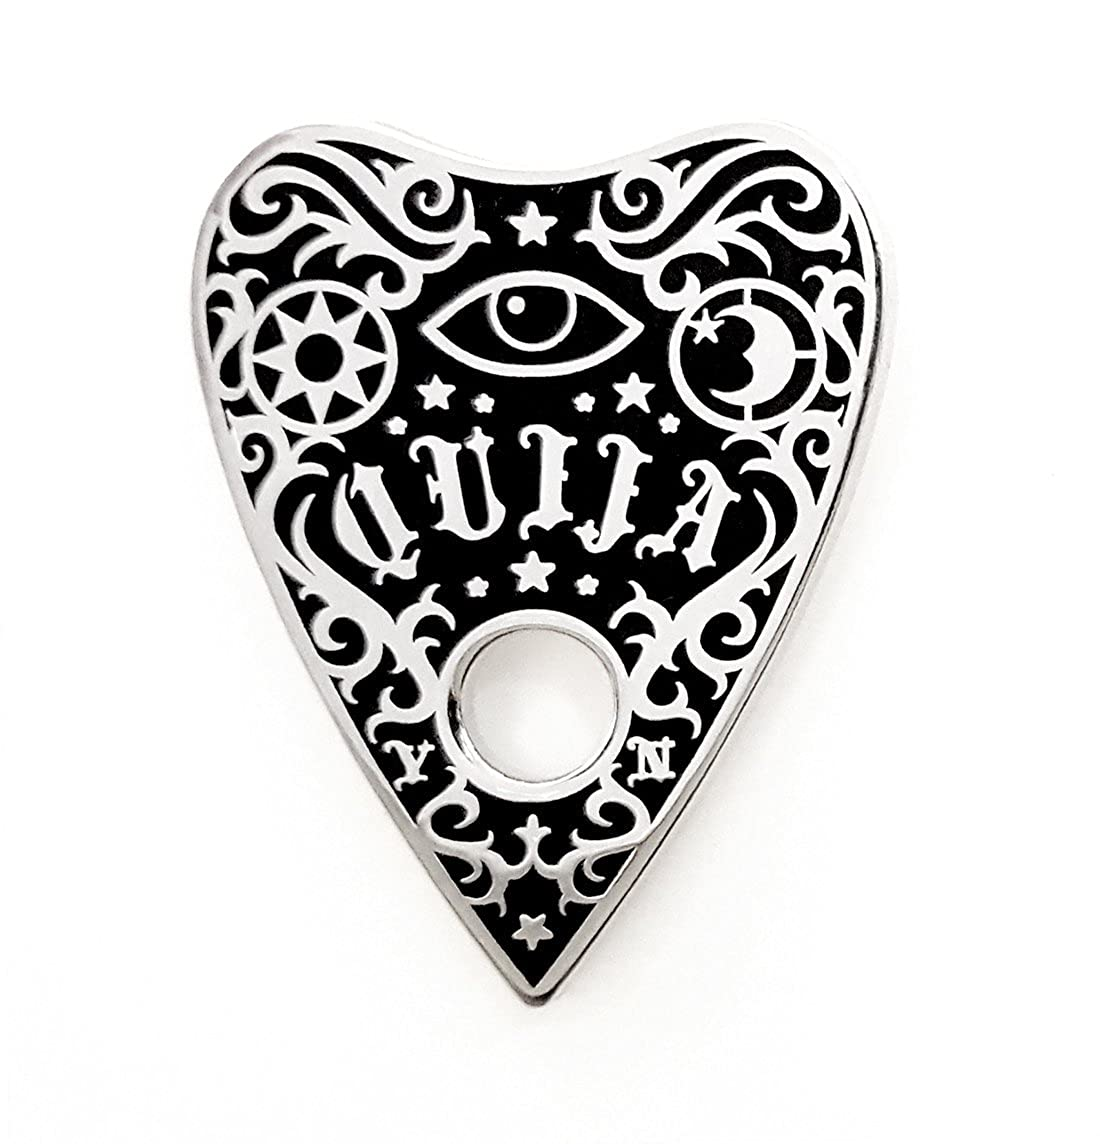 Pinsanity Ouija Planchette Lapel Pin by Pinsanity